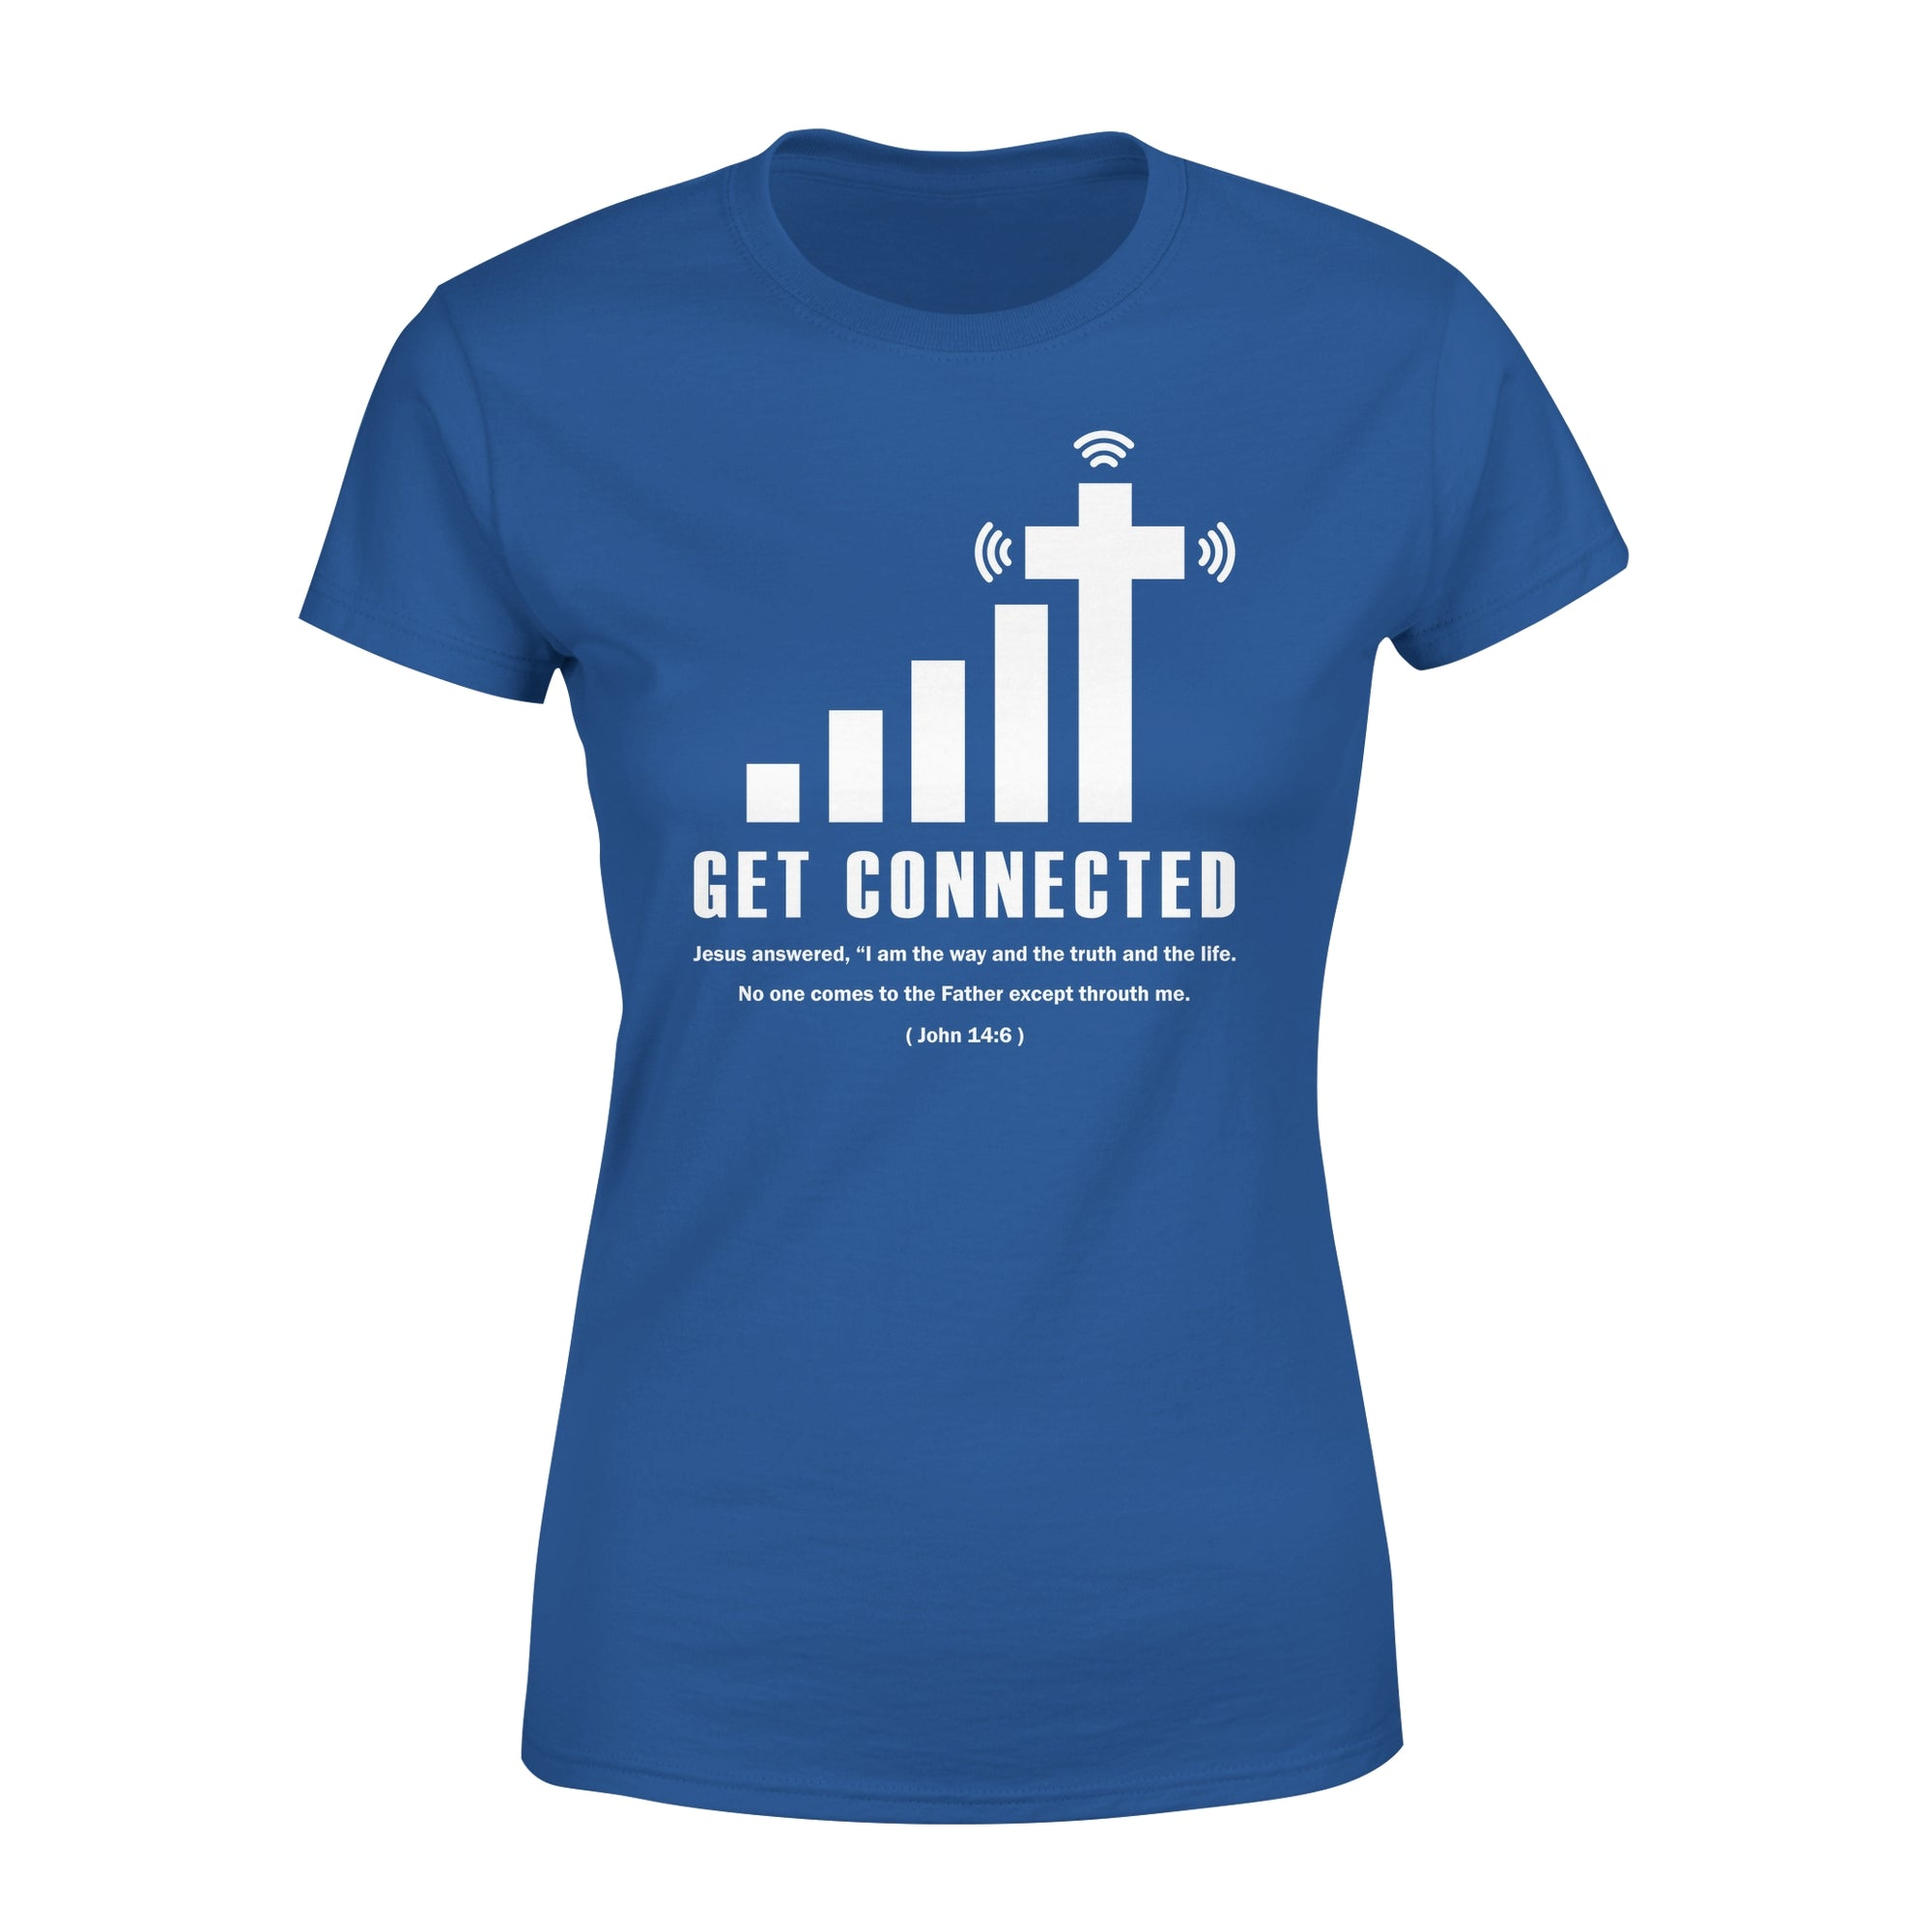 VIRA Premium Women's Tee For Jesus Lovers